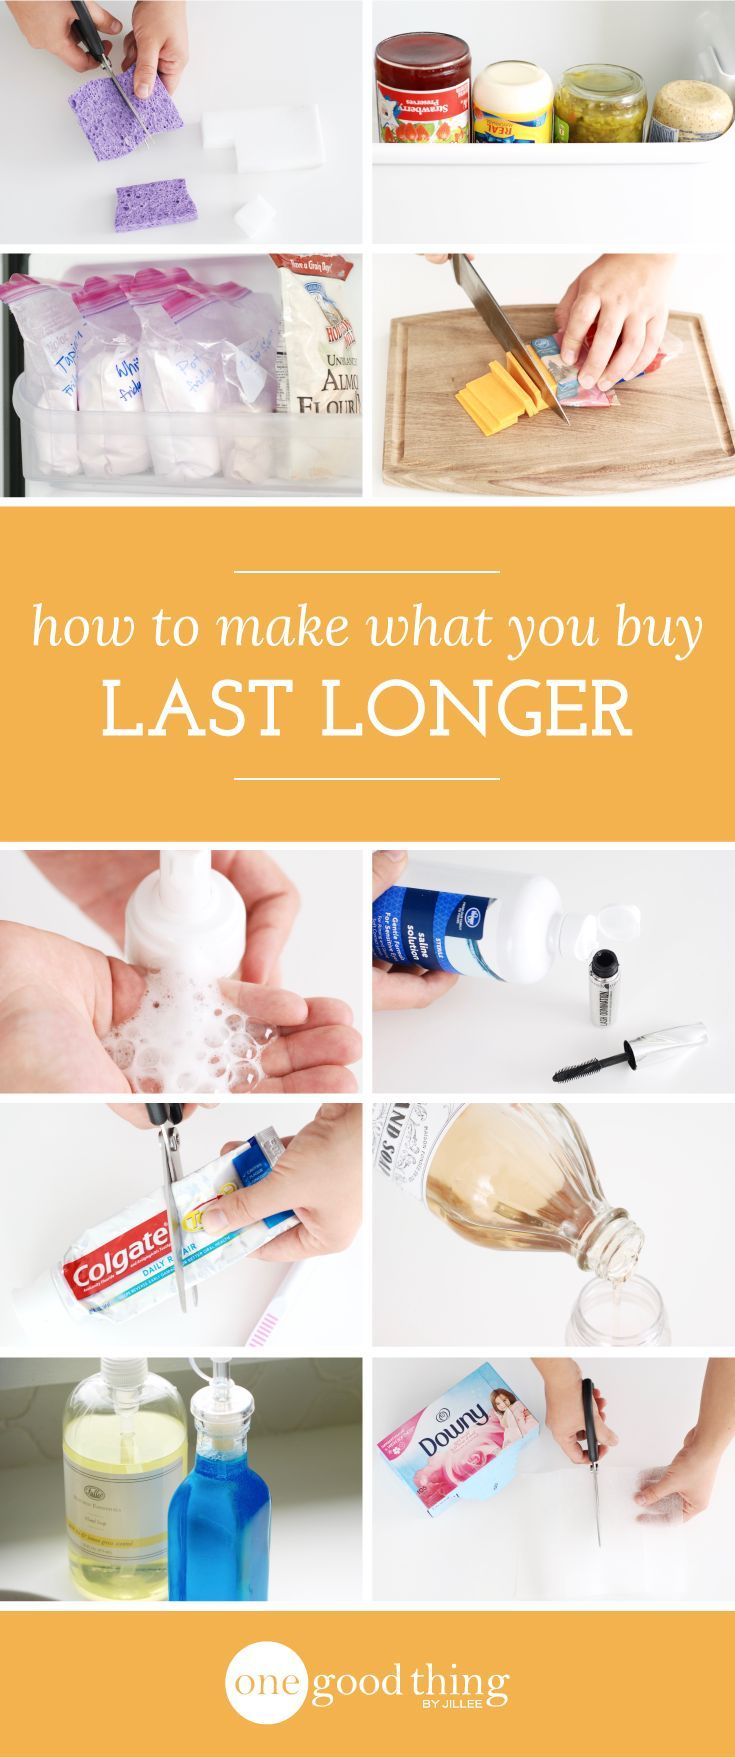 One of the best ways to save money on store-bought items is to find ways to make them last longer. Here are 16 frugal ways to extend the life of your stuff!